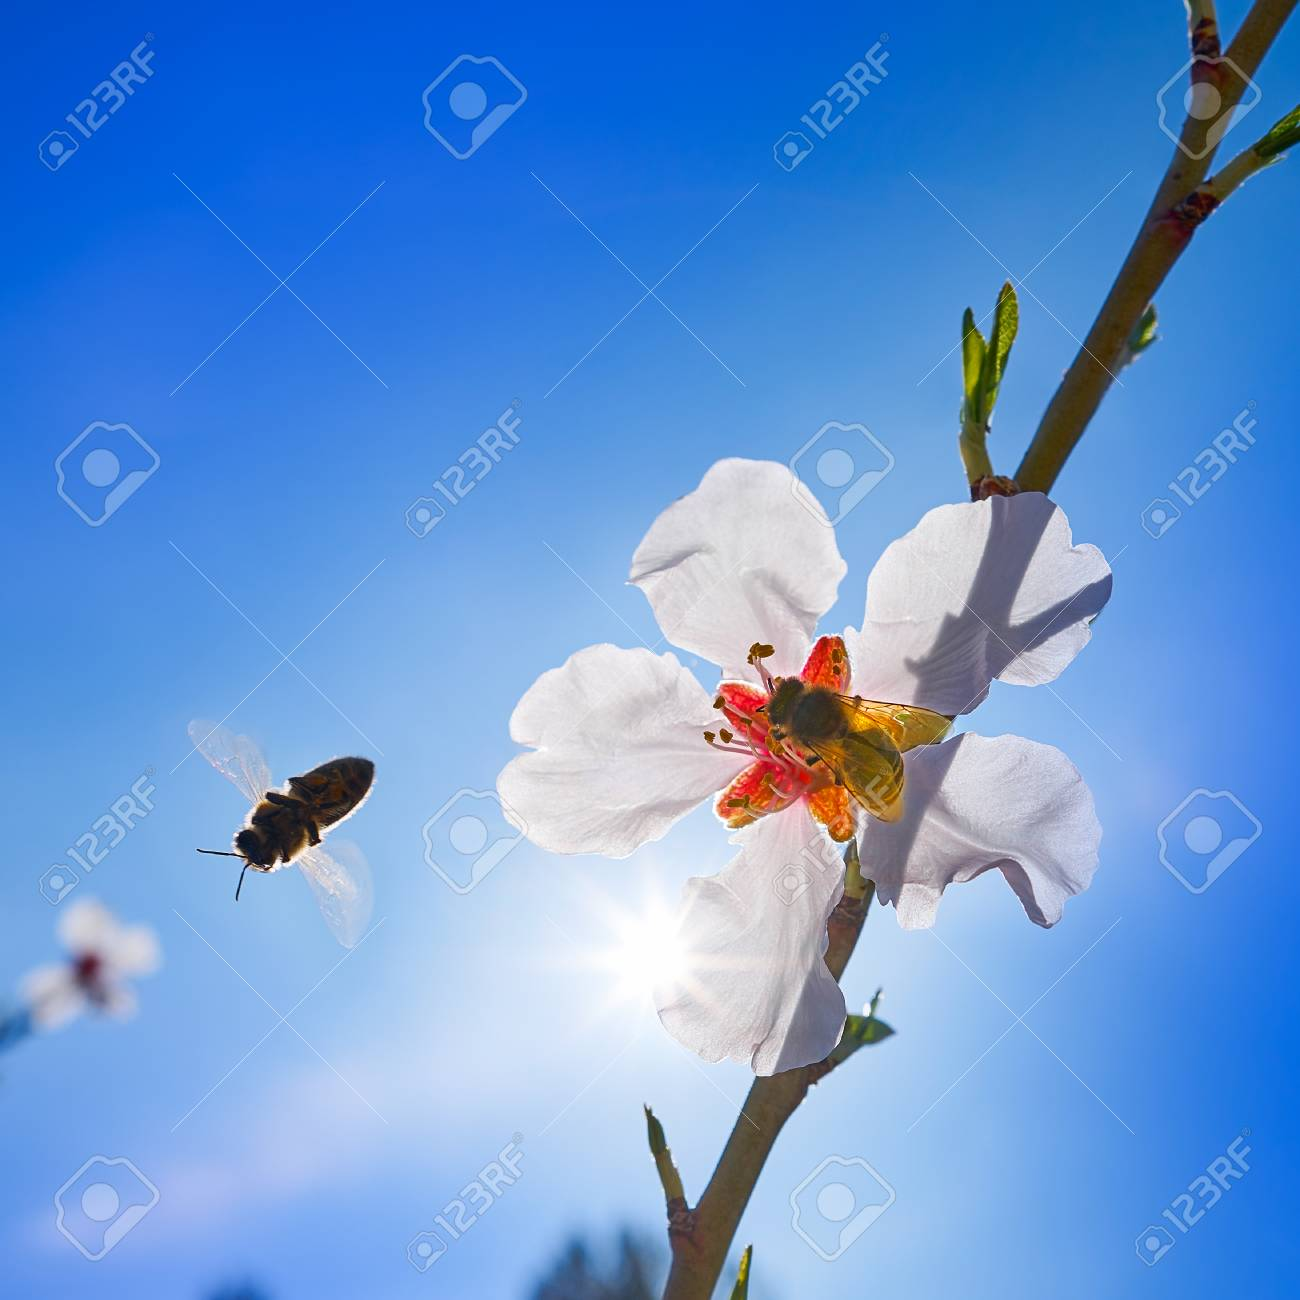 Almond flower tree with bee pollination in spring at mediterranean almond flower tree with bee pollination in spring at mediterranean stock photo 96122778 izmirmasajfo